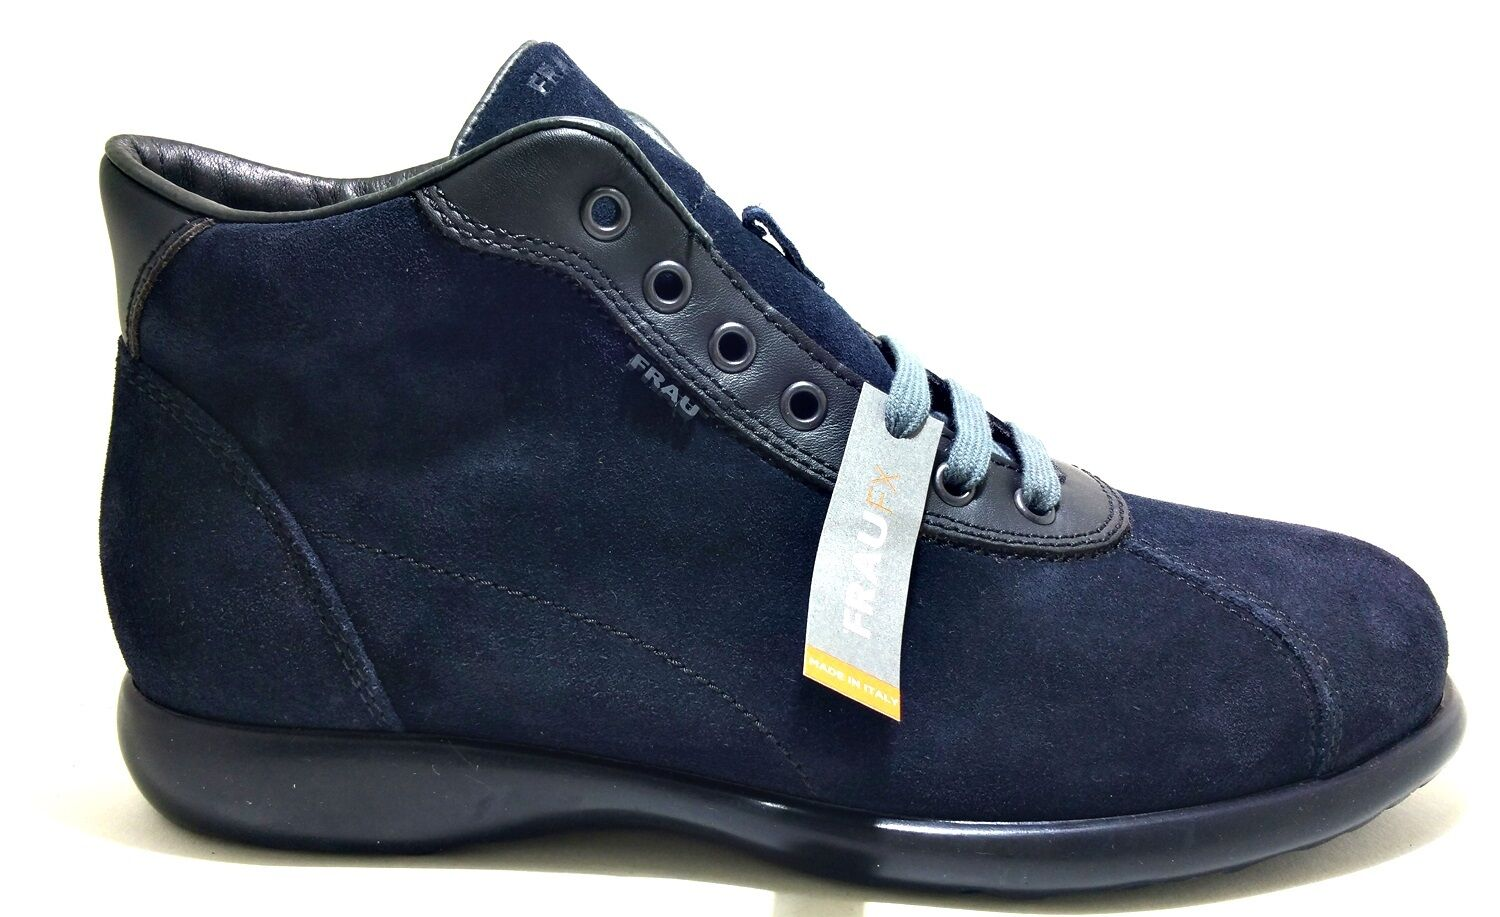 Frau 27b8 bluee shoes Velour Lace-Up Man Booties Leather Suede High Sneakers